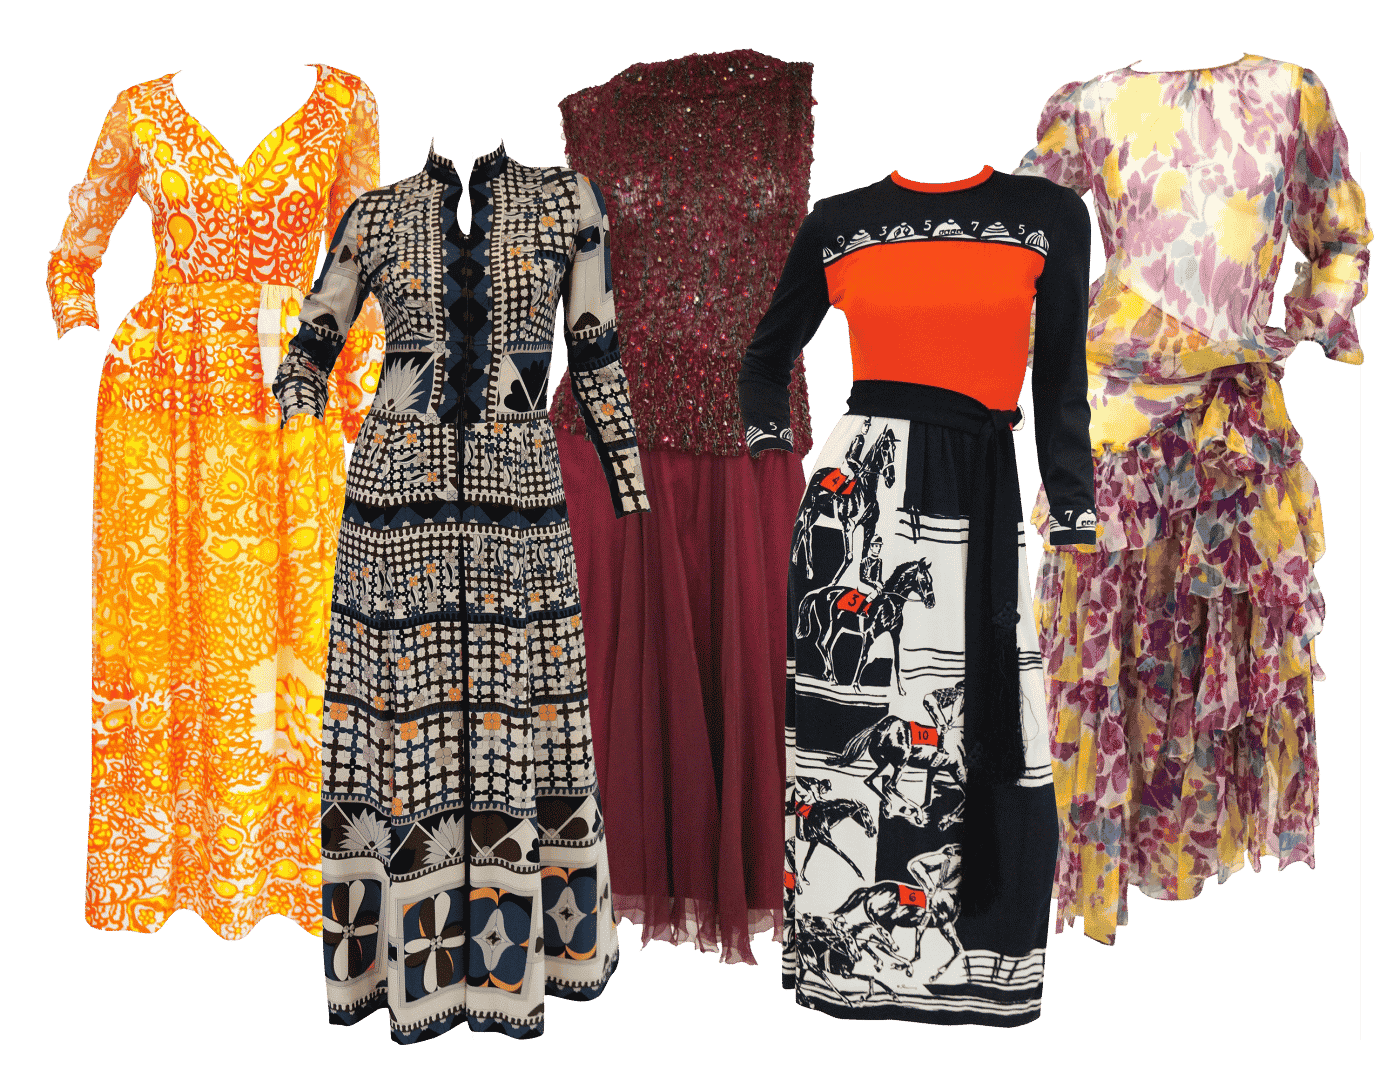 Collage of MRS Couture inventory, featuring gowns from Christian Dior, Averardo Bessi, Yves Saint Laurent, Gene Berk and Oscar de la Renta